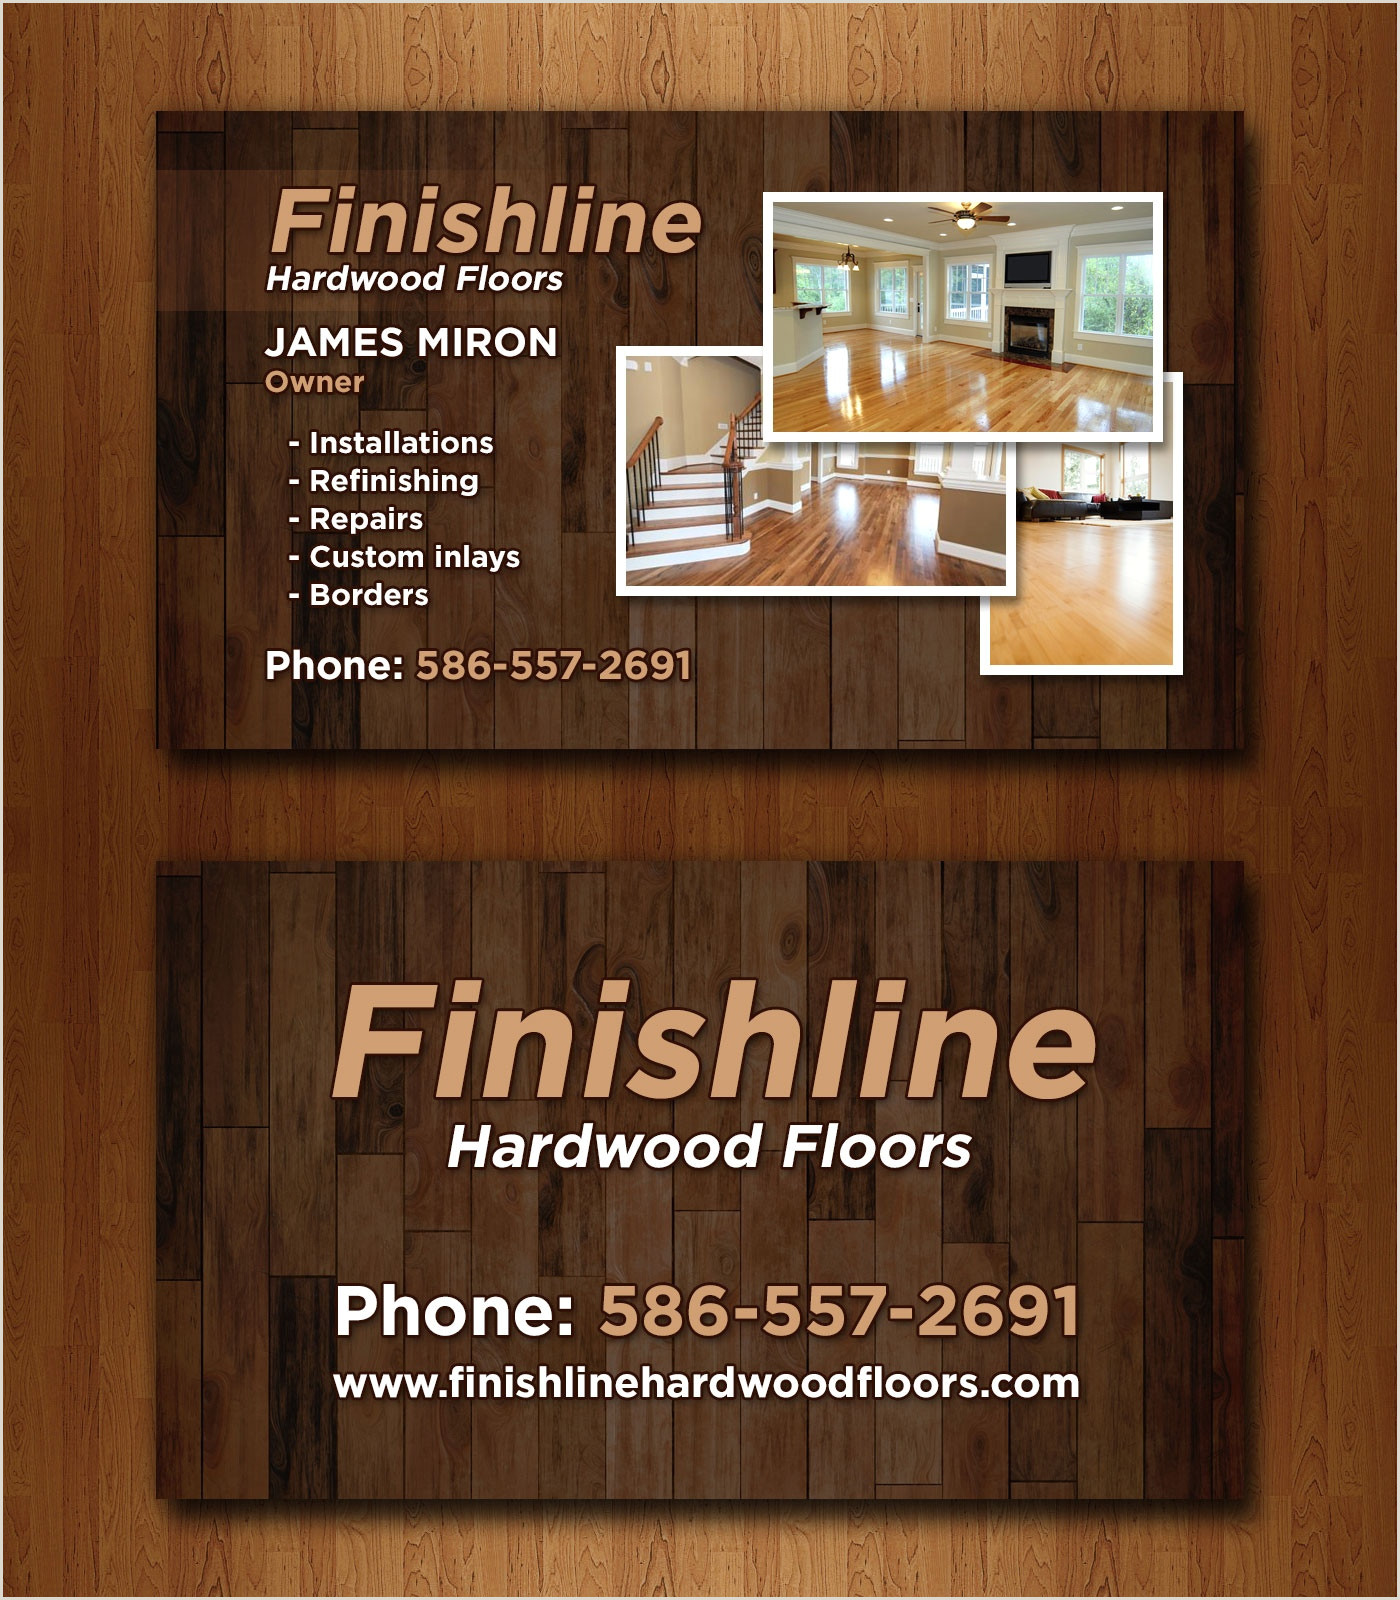 Graphic Business Cards 14 Popular Hardwood Flooring Business Card Template